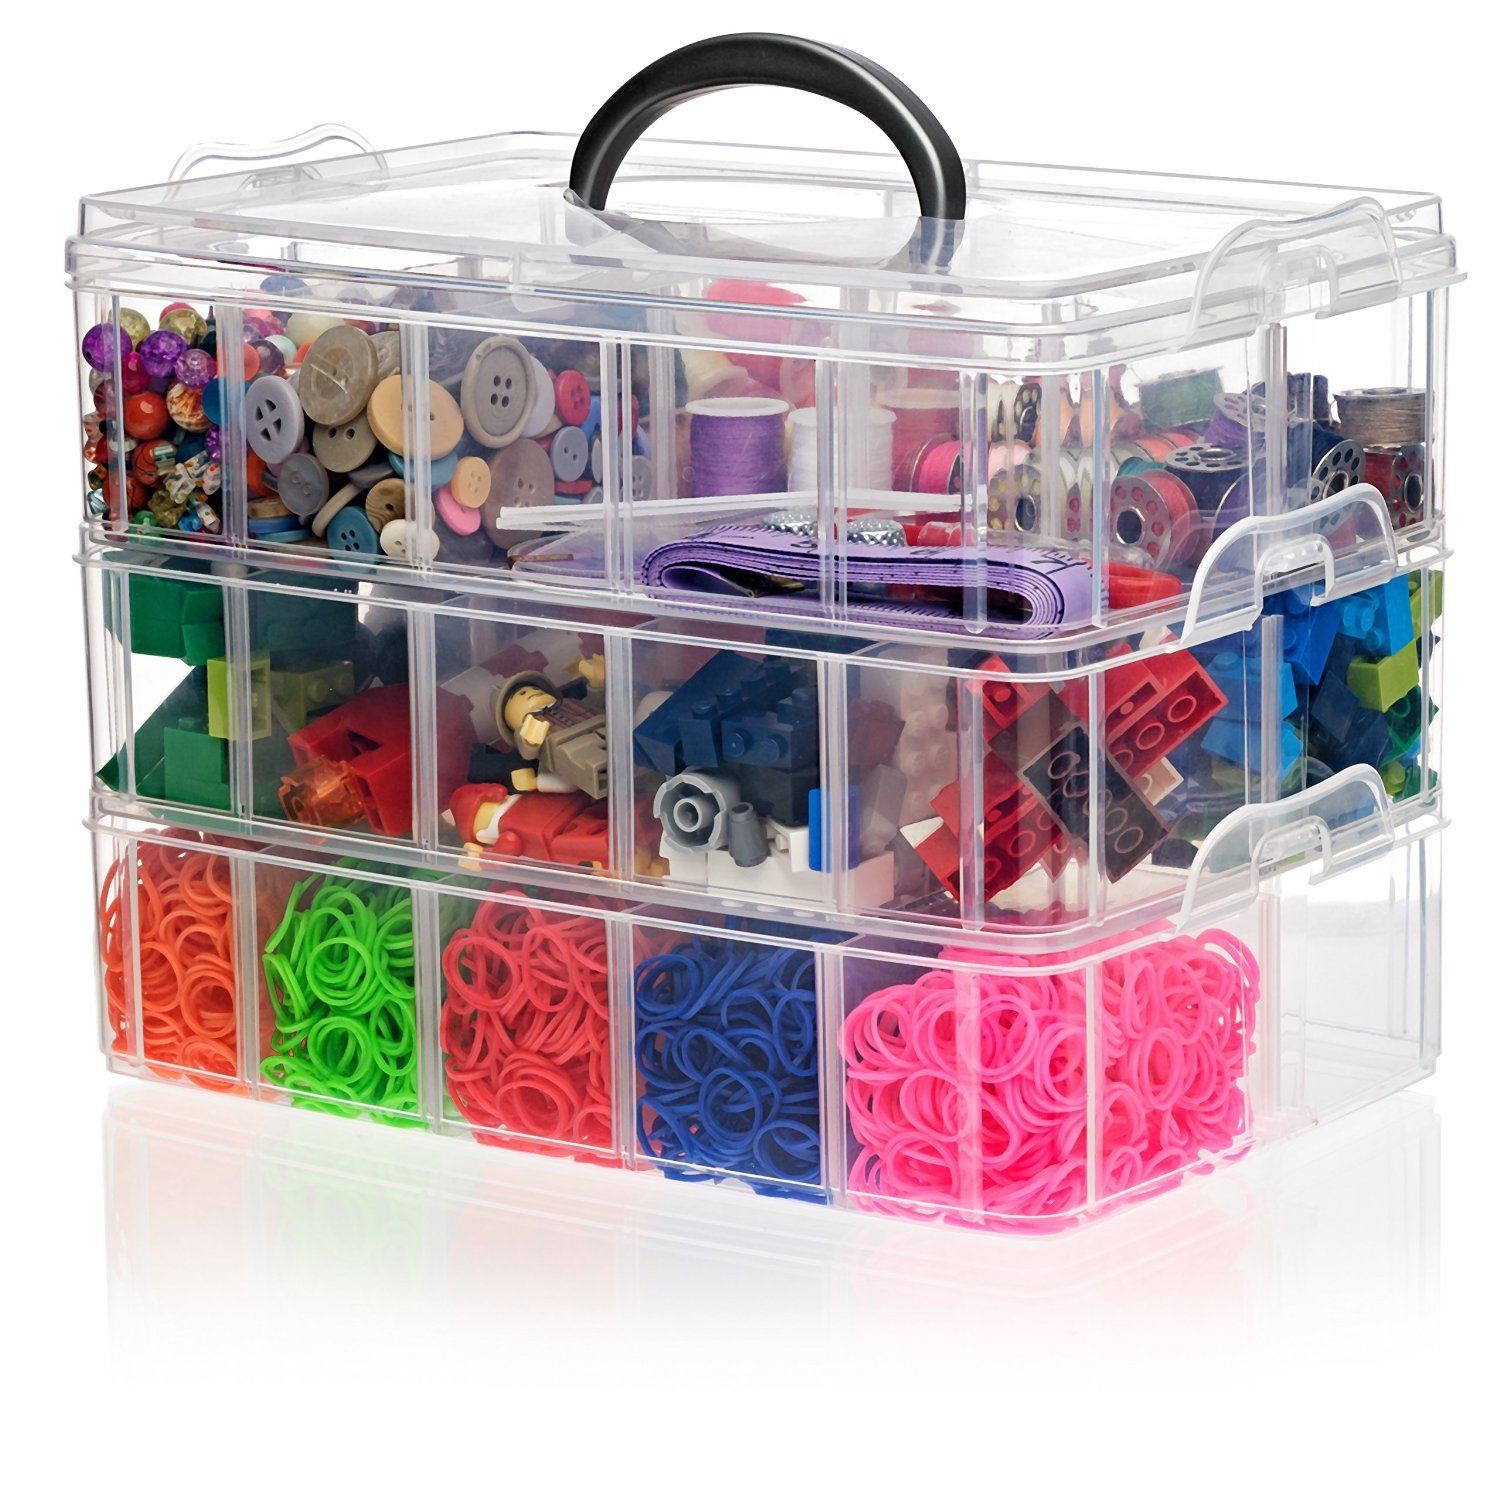 California Home Goods Snapcube Stackable Arts & Crafts Organizer Case, Clear, Perfect Storage for Legos, Shopkins Littlest Pet Shop Figures, Rainbow Loom, Perler Beads, Figurines, Accessories